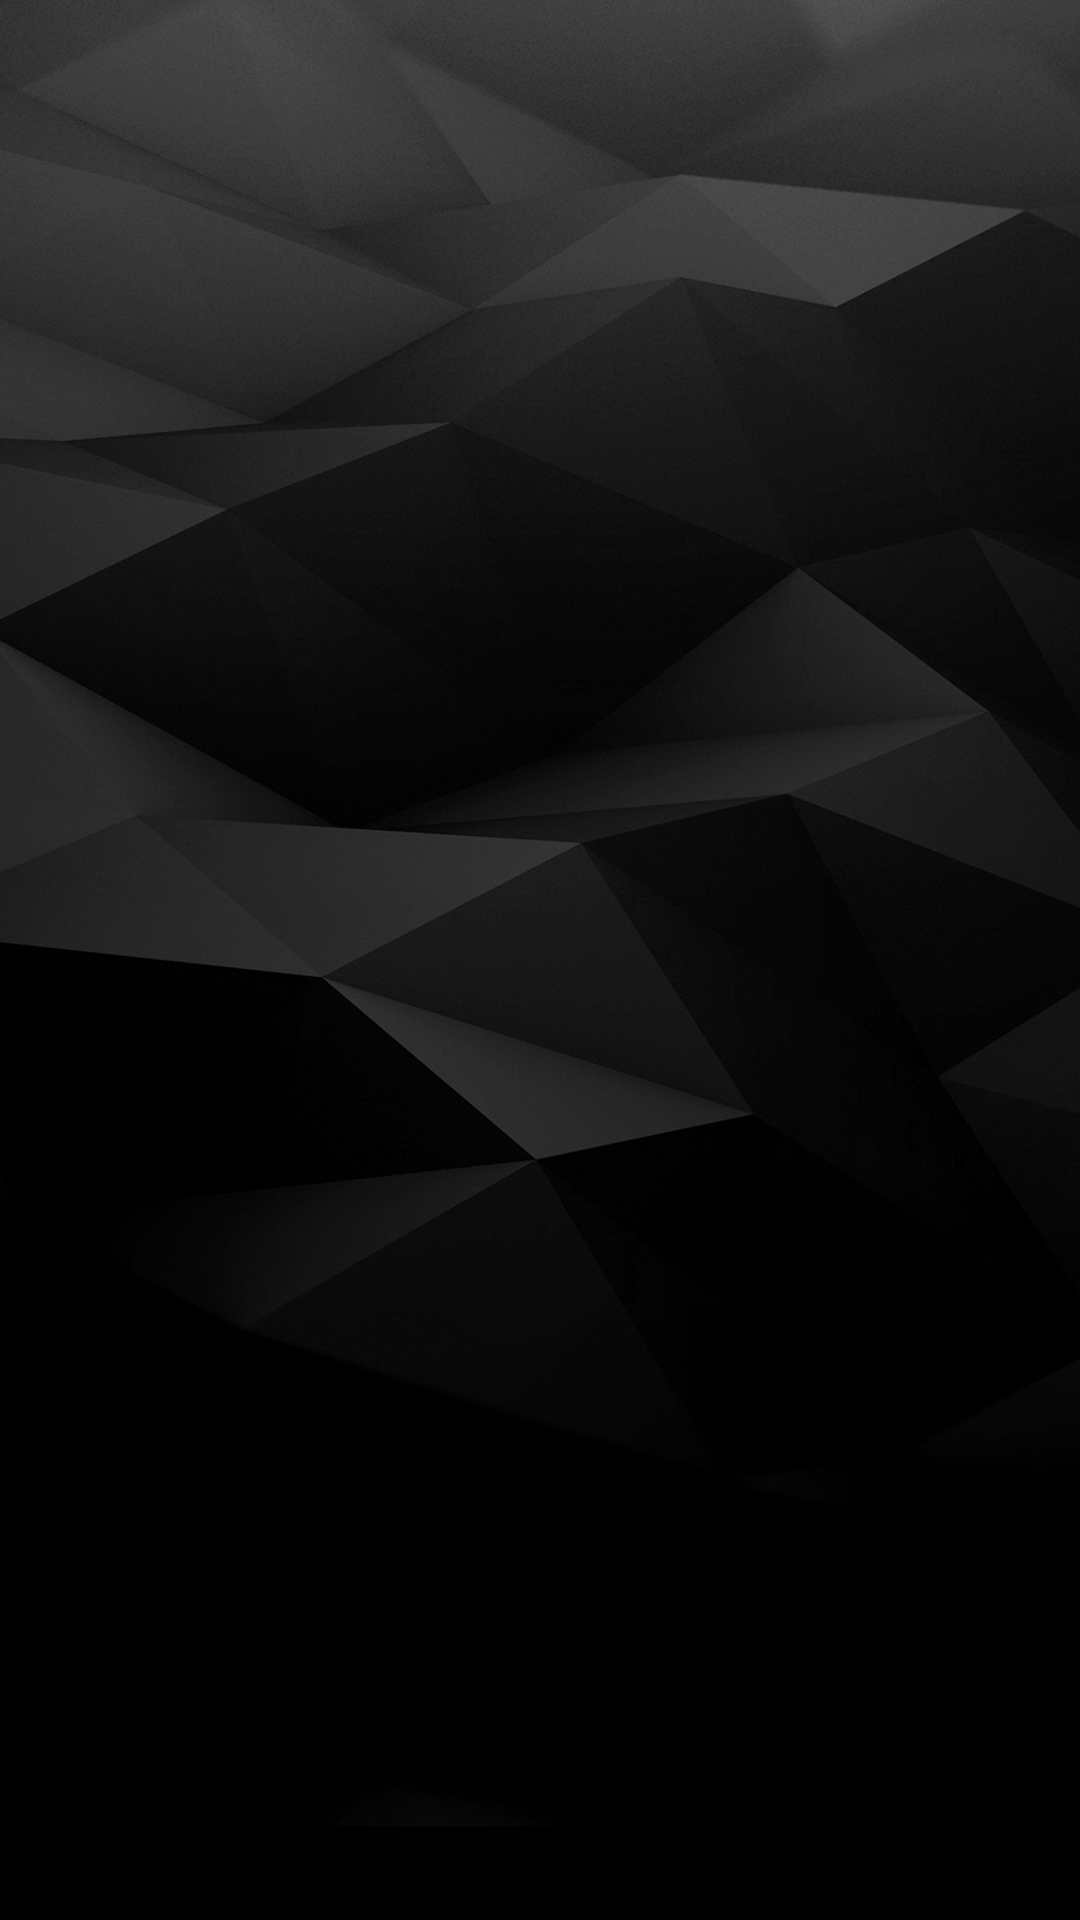 3d Depth Wallpaper S8 Noir Best Htc One Wallpapers Free And Easy To Download